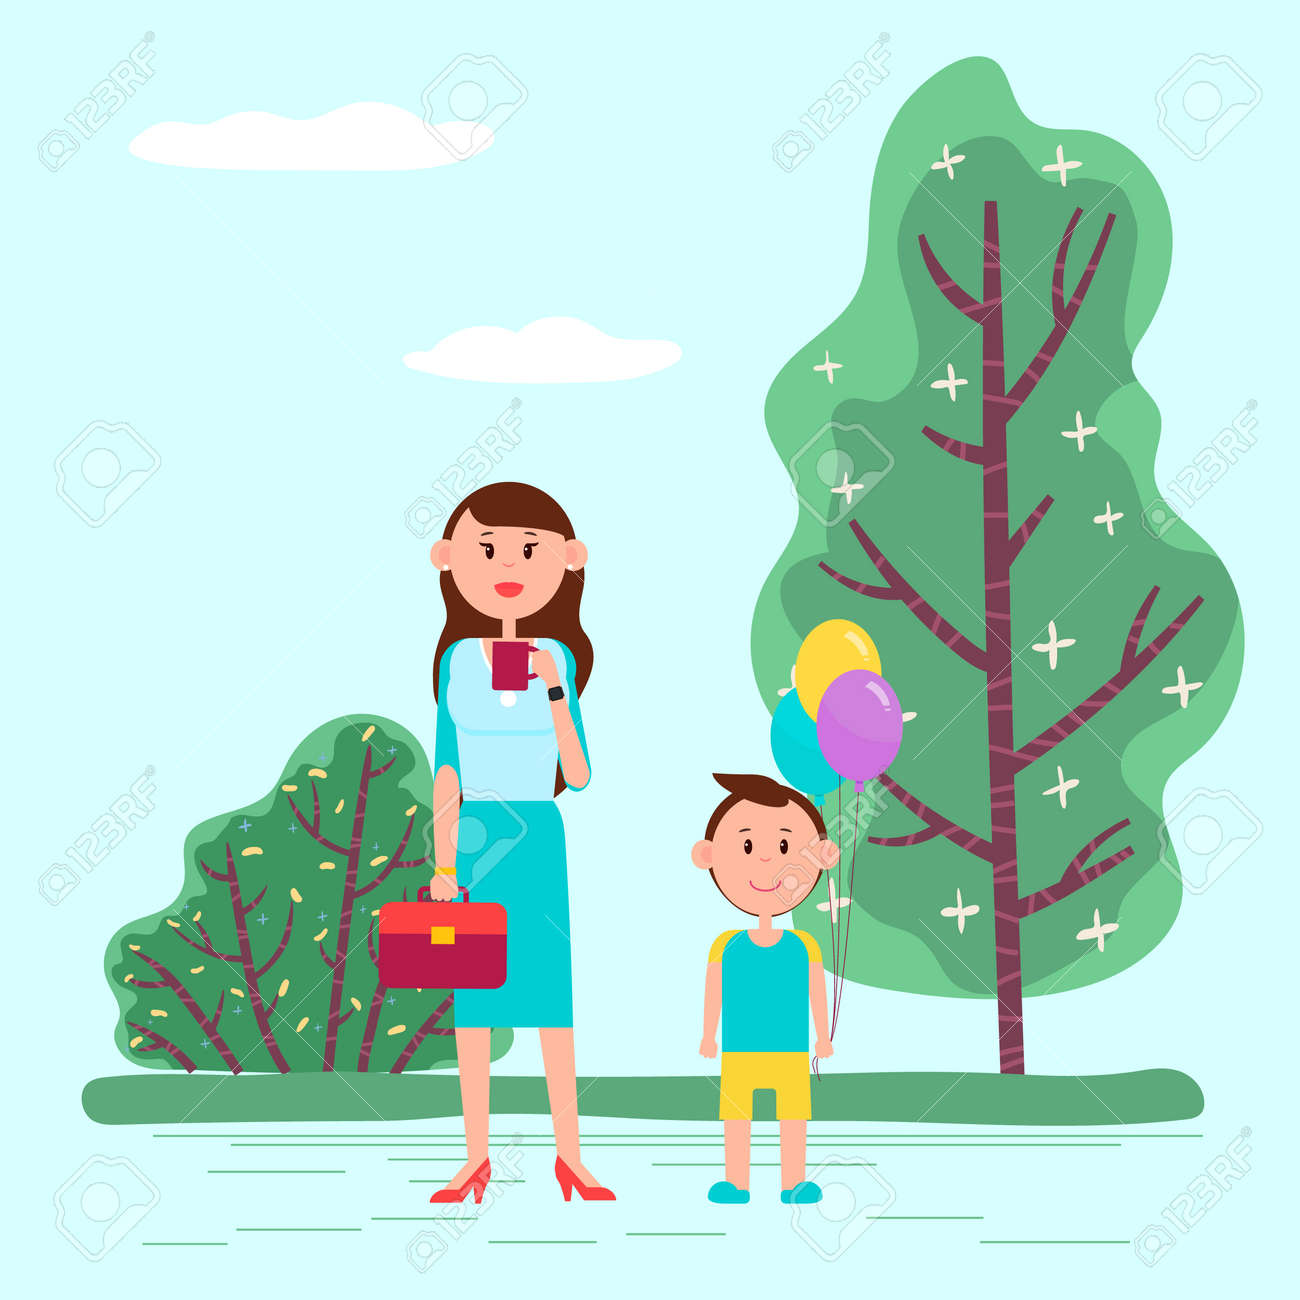 151 Kids Birthday Party Outside Illustrations, Royalty-Free Vector Graphics  & Clip Art - iStock